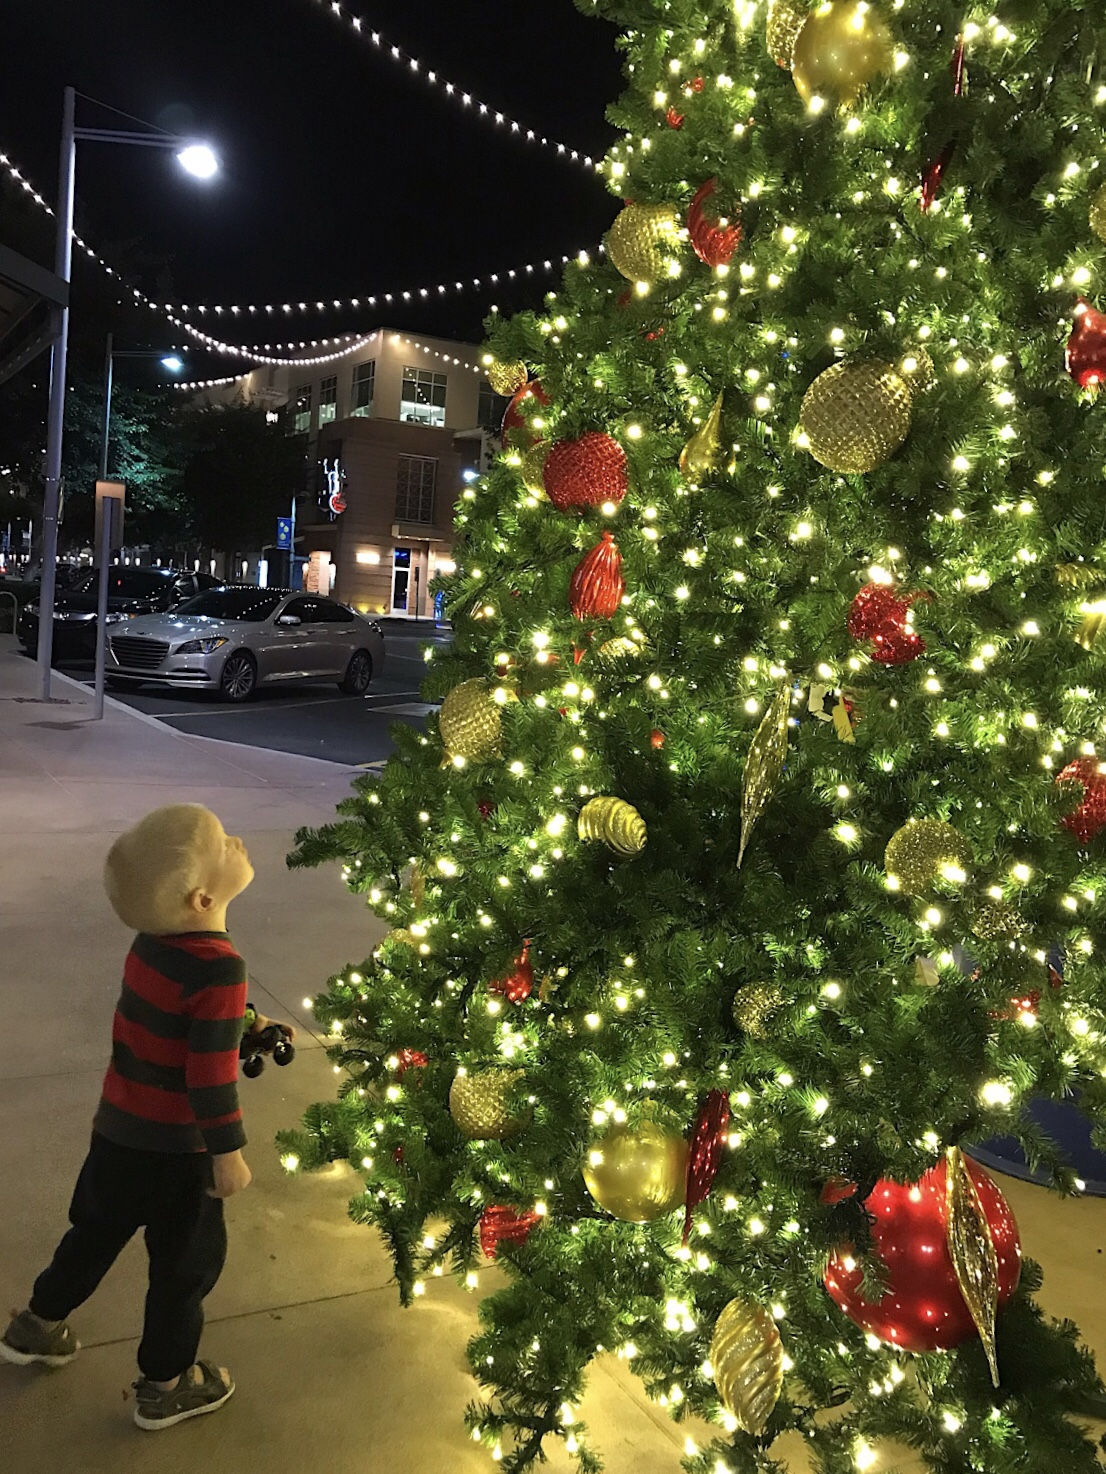 Phoenix Christmas Lights 2020 Review Holiday Light Shows in Phoenix   Phoenix With Kids